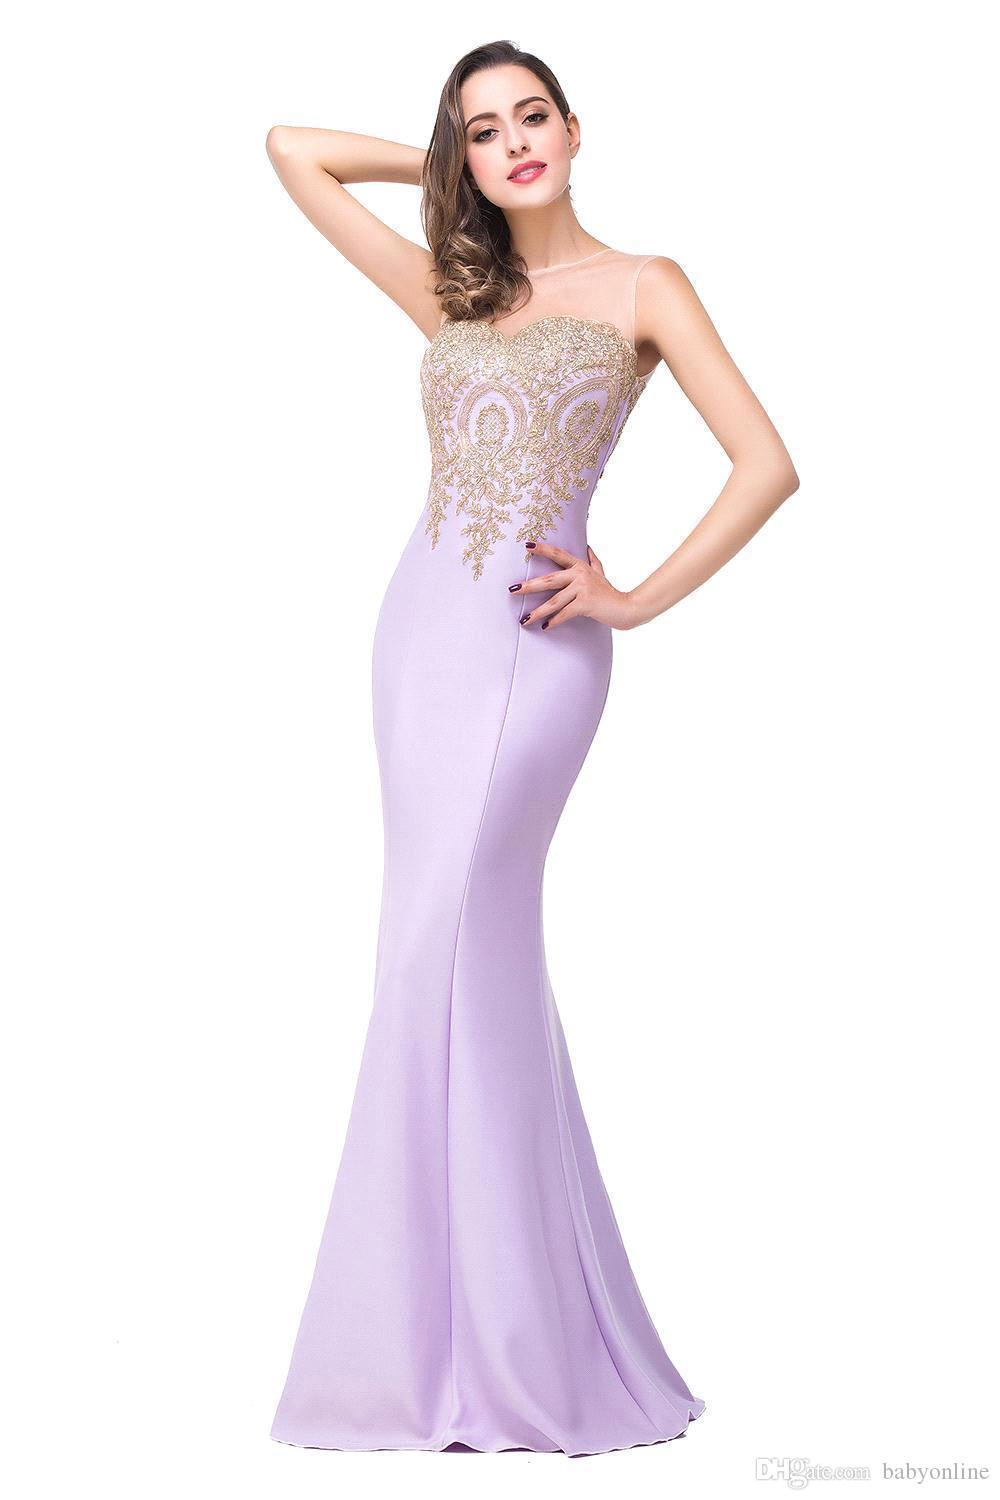 Robe De Soiree Cheap Sexy Mermaid Prom Dresses 2019 Sheer Jewel Neck Appliques Sleeveless Long Formal Evening Dresses CPS262